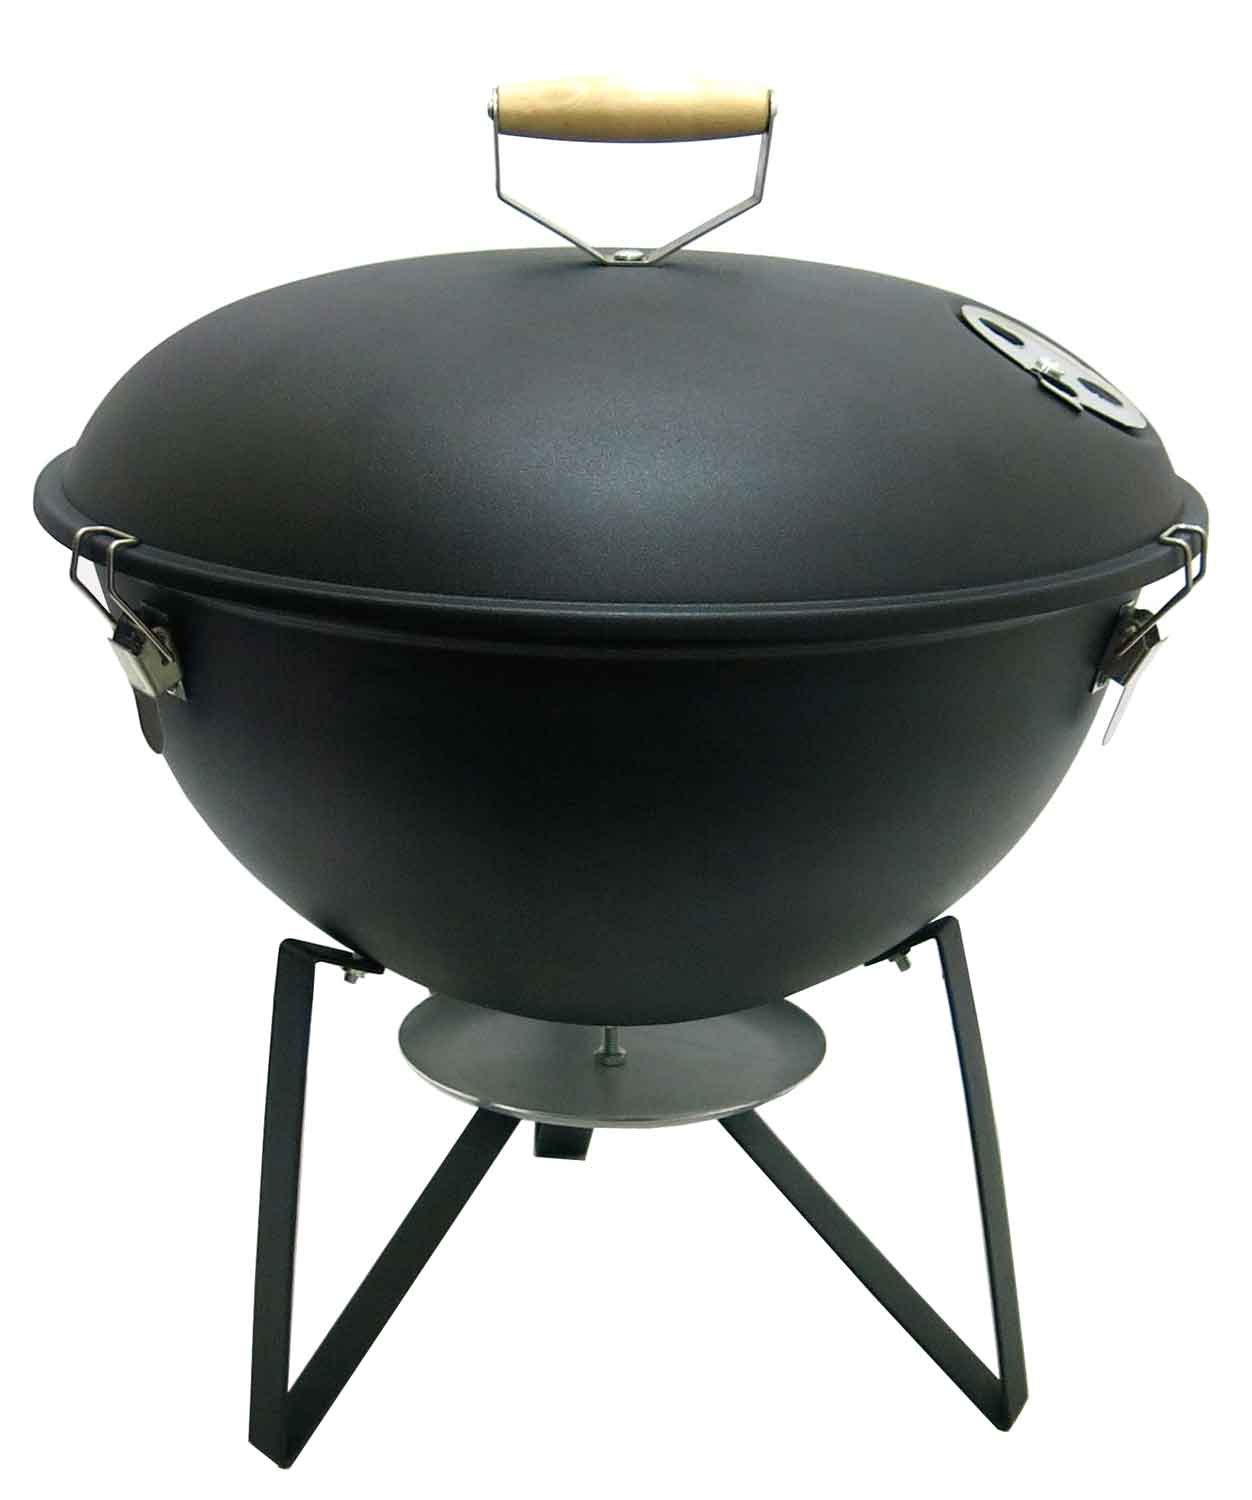 Fabrilla Kettle Oval Charcoal Barbeque Grill